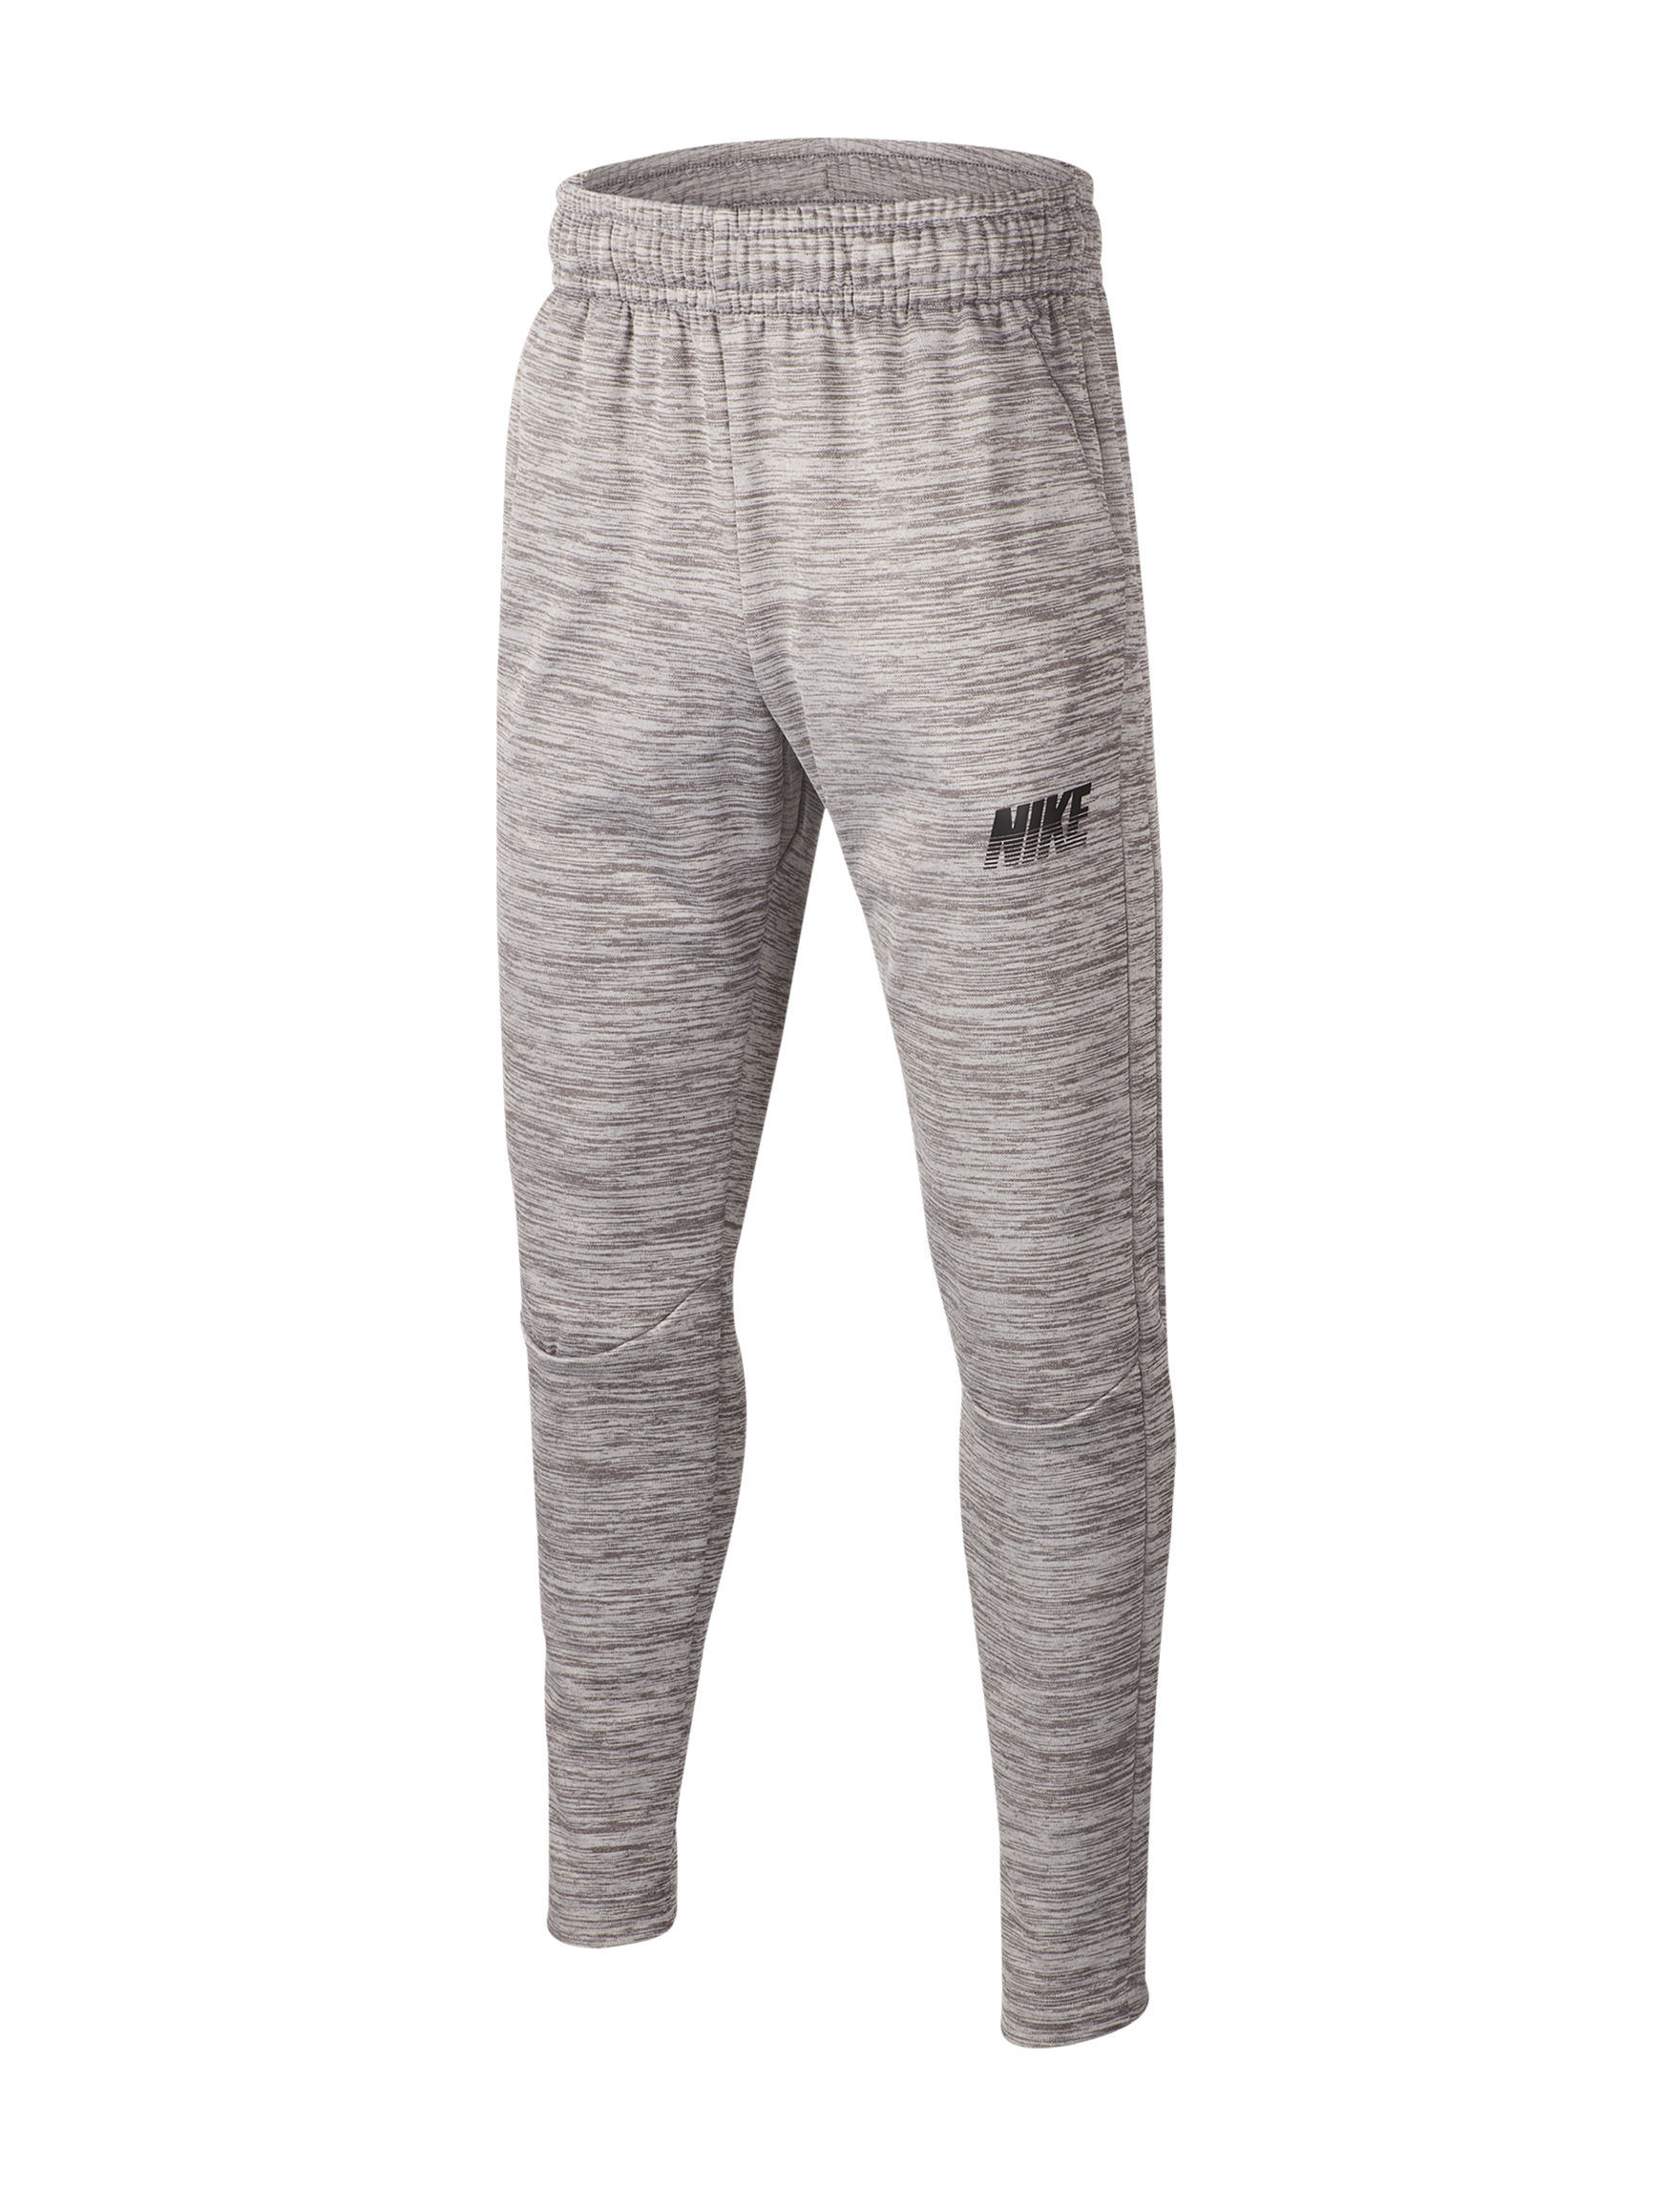 Nike Heather Grey Relaxed